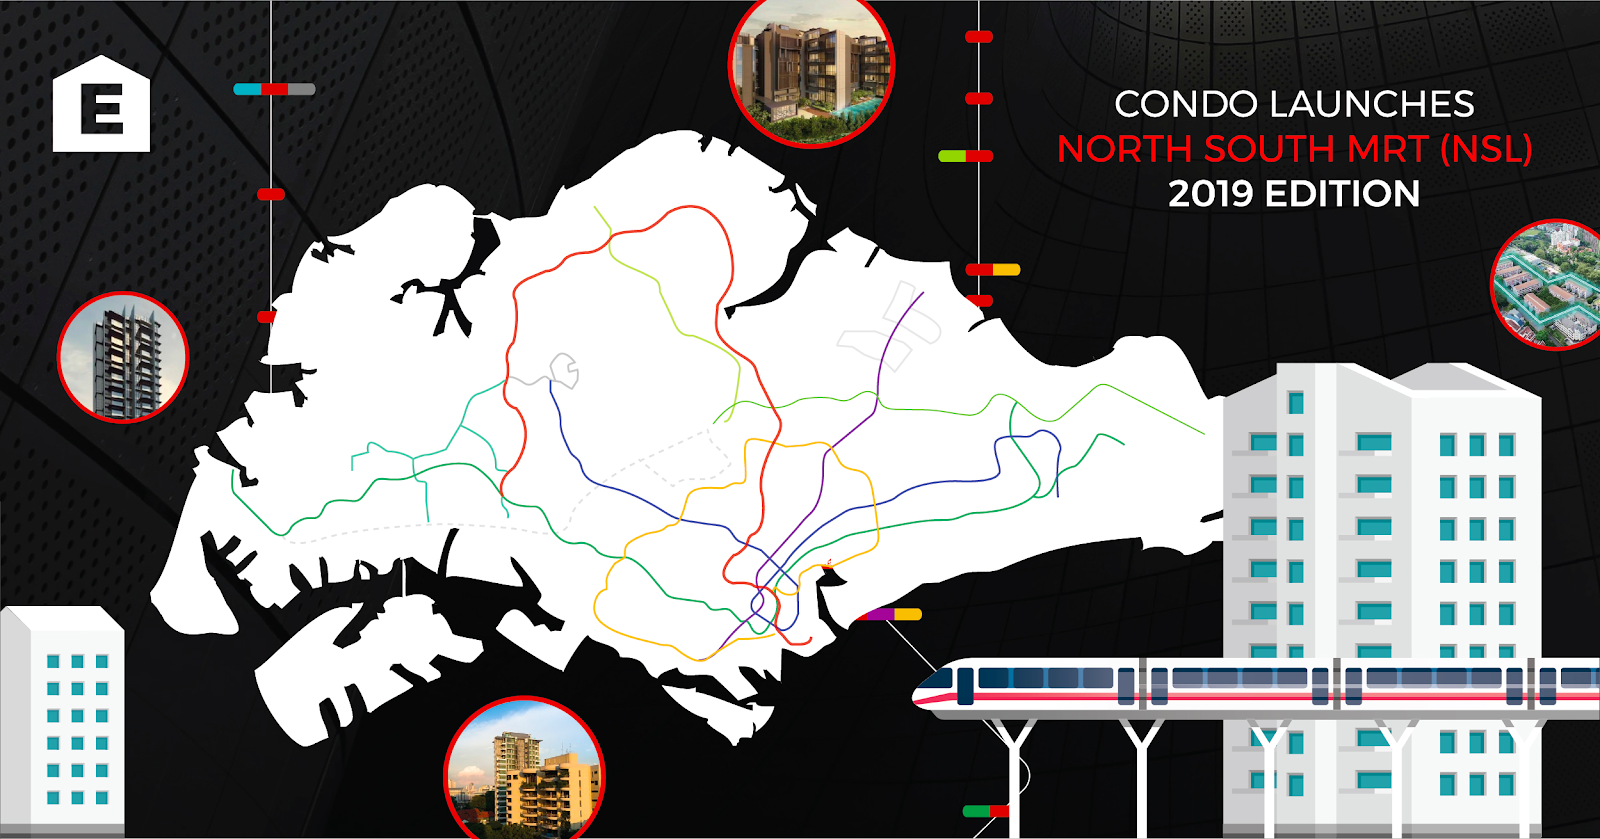 New Condo Launches within 500m of a North South Line (NSL) Station: 2019 Edition